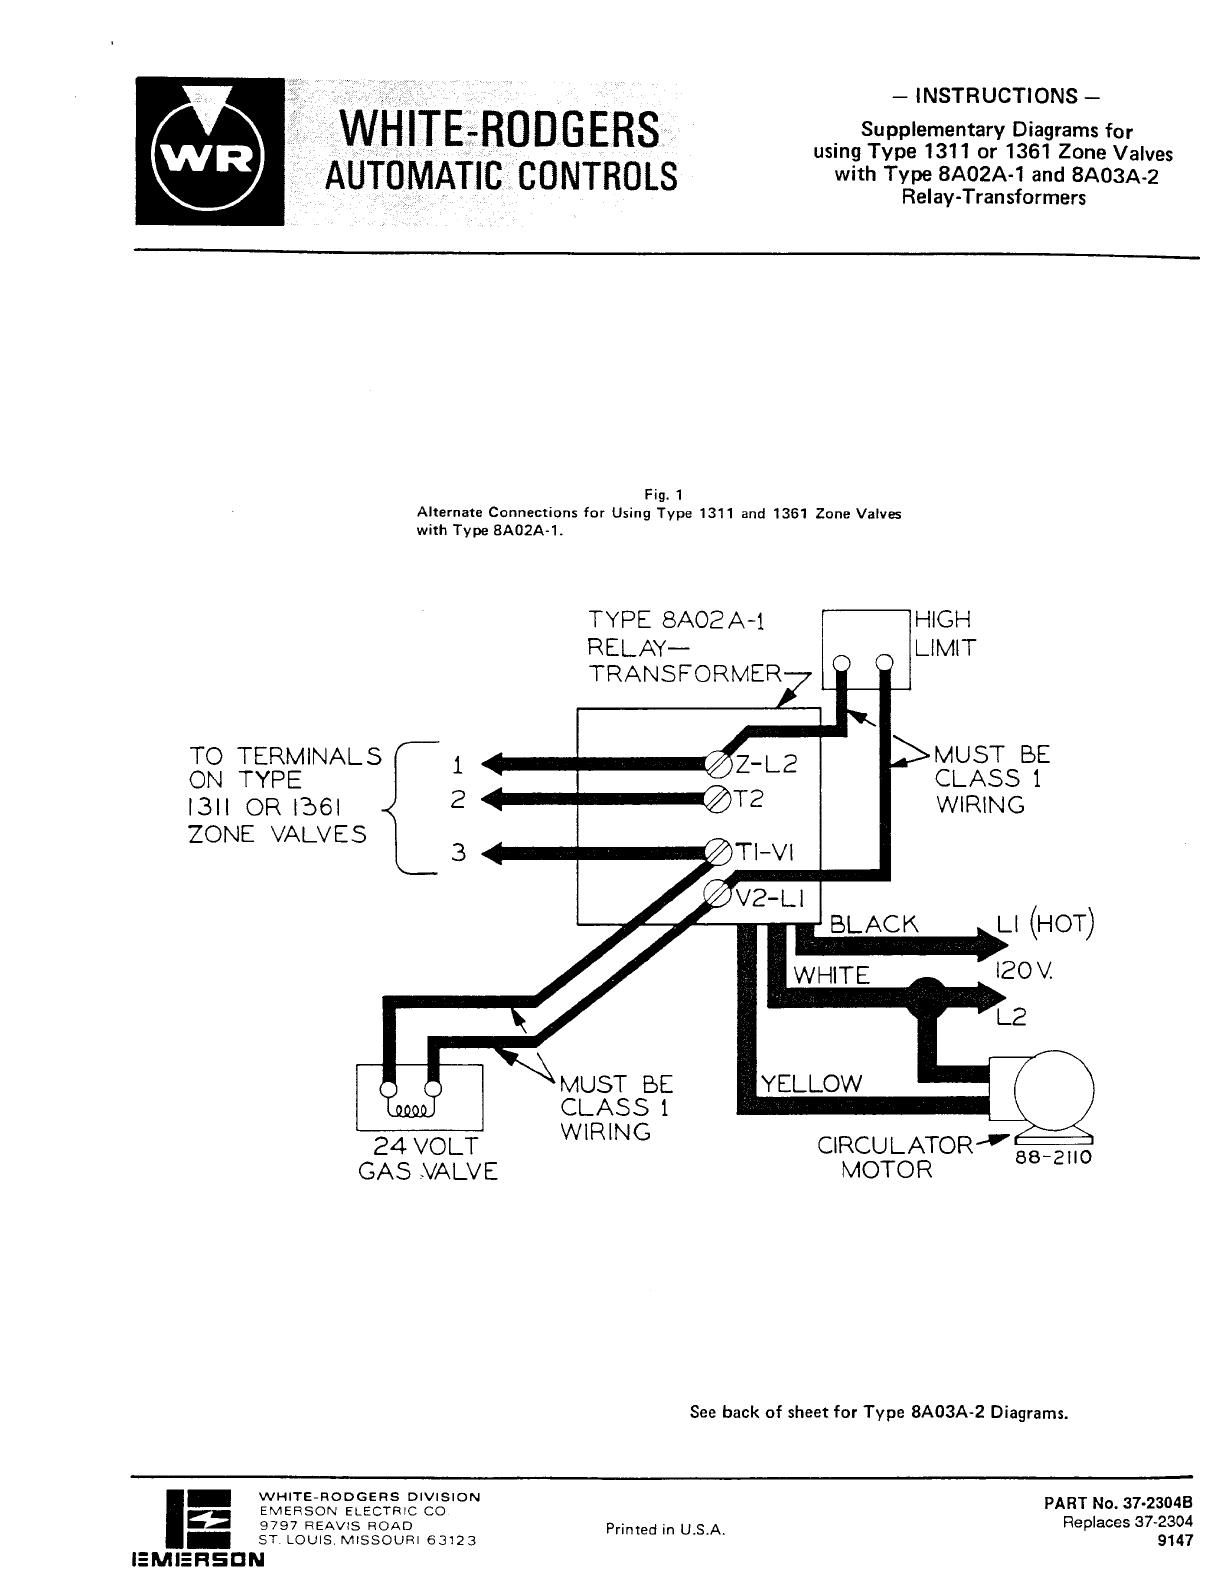 White Rodgers 1361 102 Wiring Diagram - 2015 Chevy Traverse Wiring Diagram  for Wiring Diagram Schematics   White Rodgers 1361 102 Wiring Diagram      Wiring Diagram Schematics